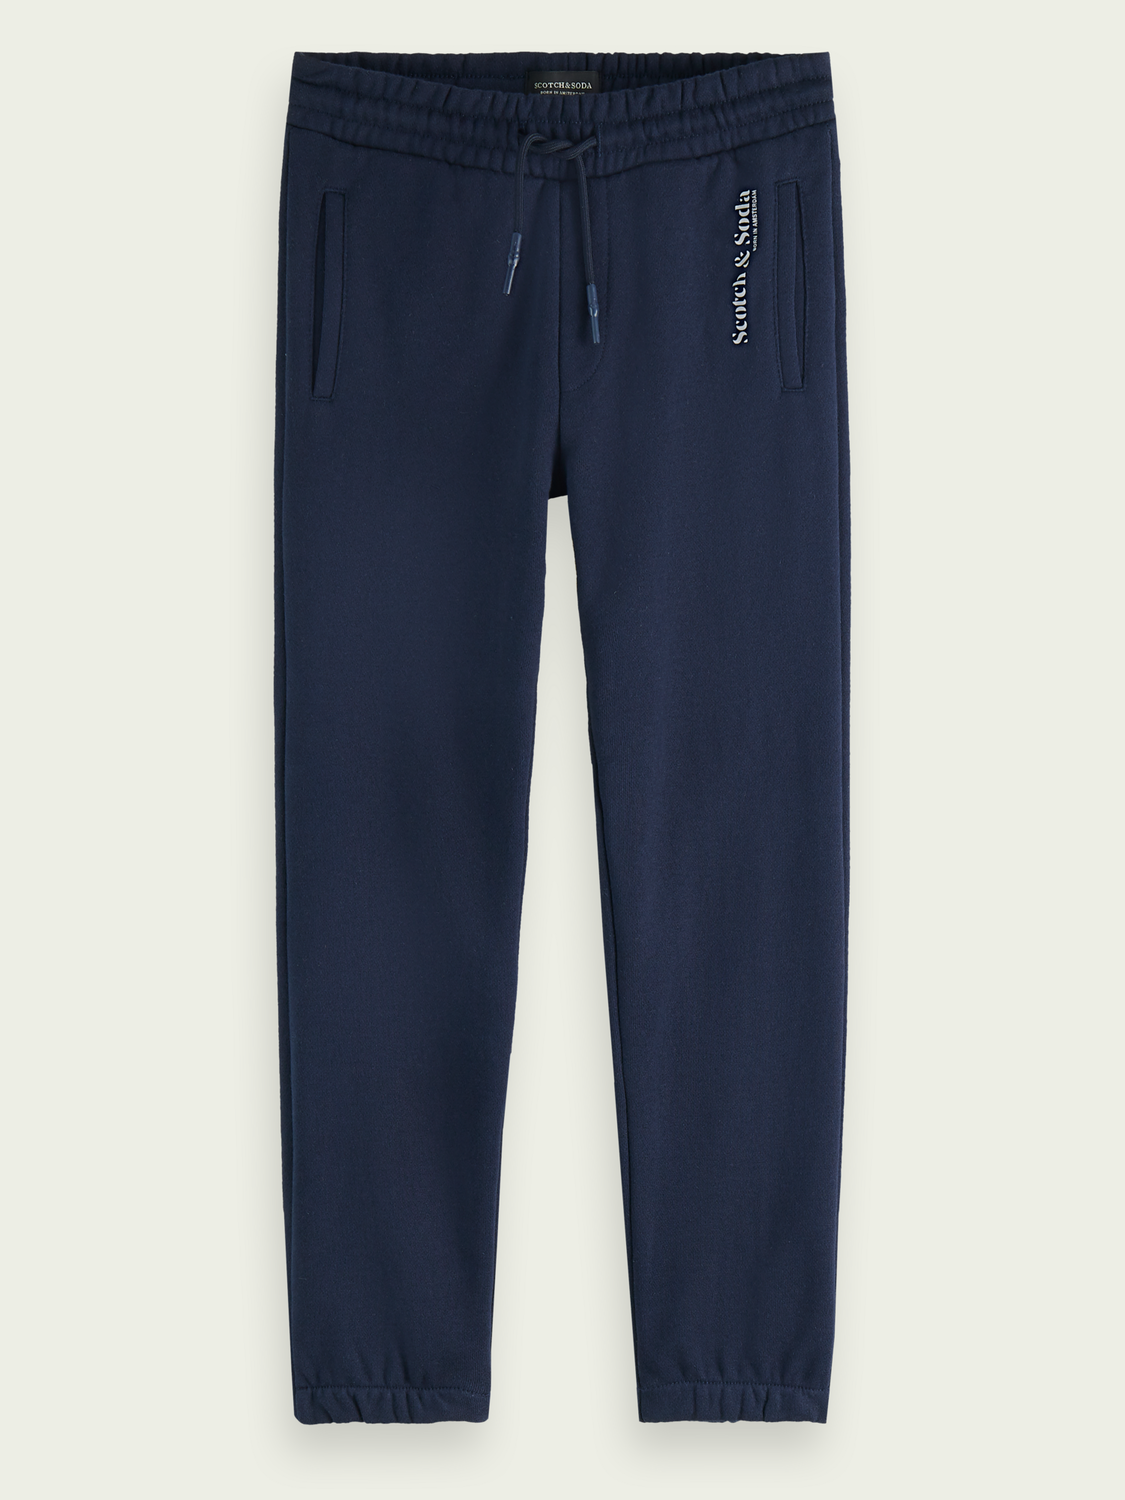 Hidden category Relaxed-fit organic cotton sweatpants